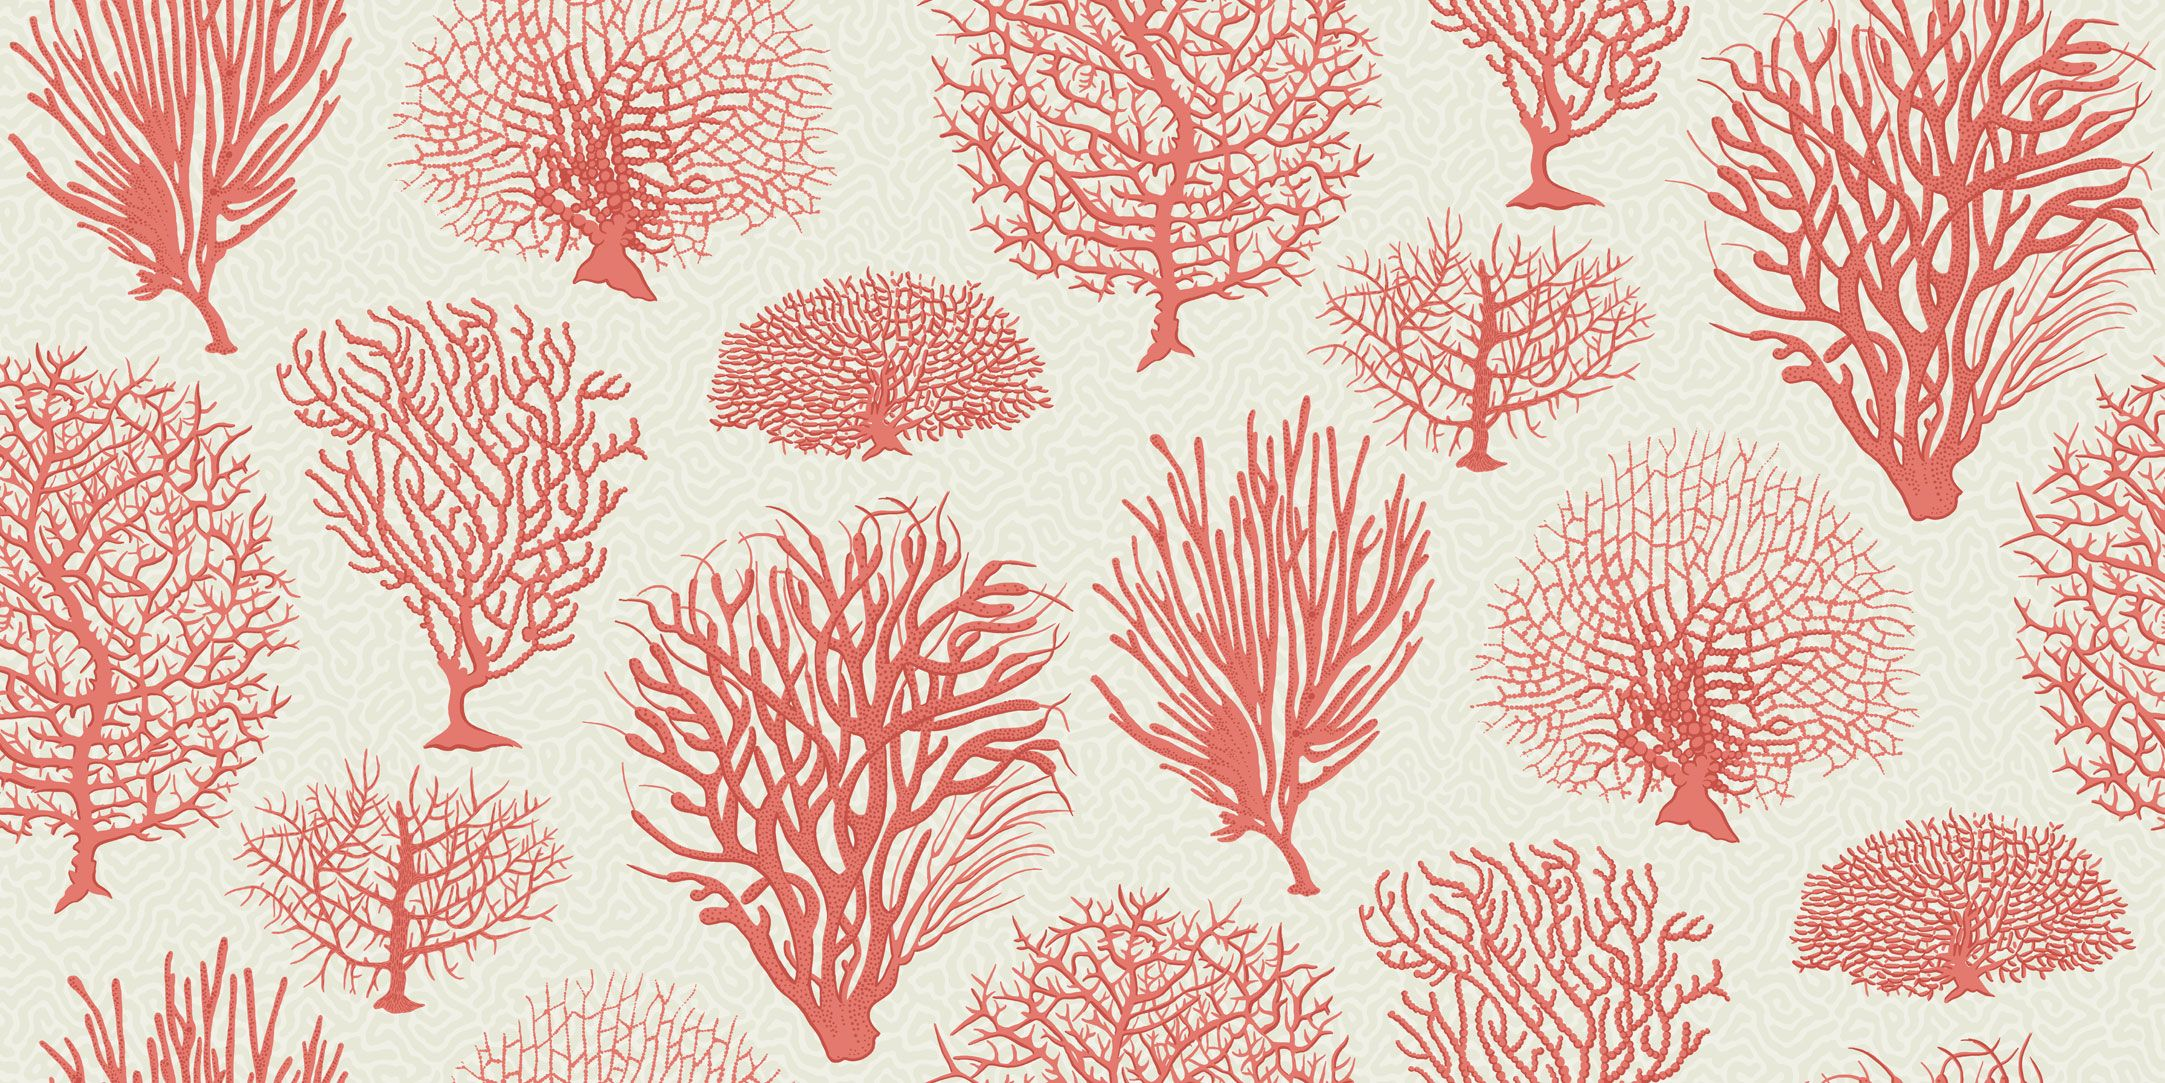 Seafern interiors pinterest wallpaper online designer staghorn and ivory tree are just some of the coral species represented in this classic wallpaper inspired by antique botanical prints from the late placed sisterspd